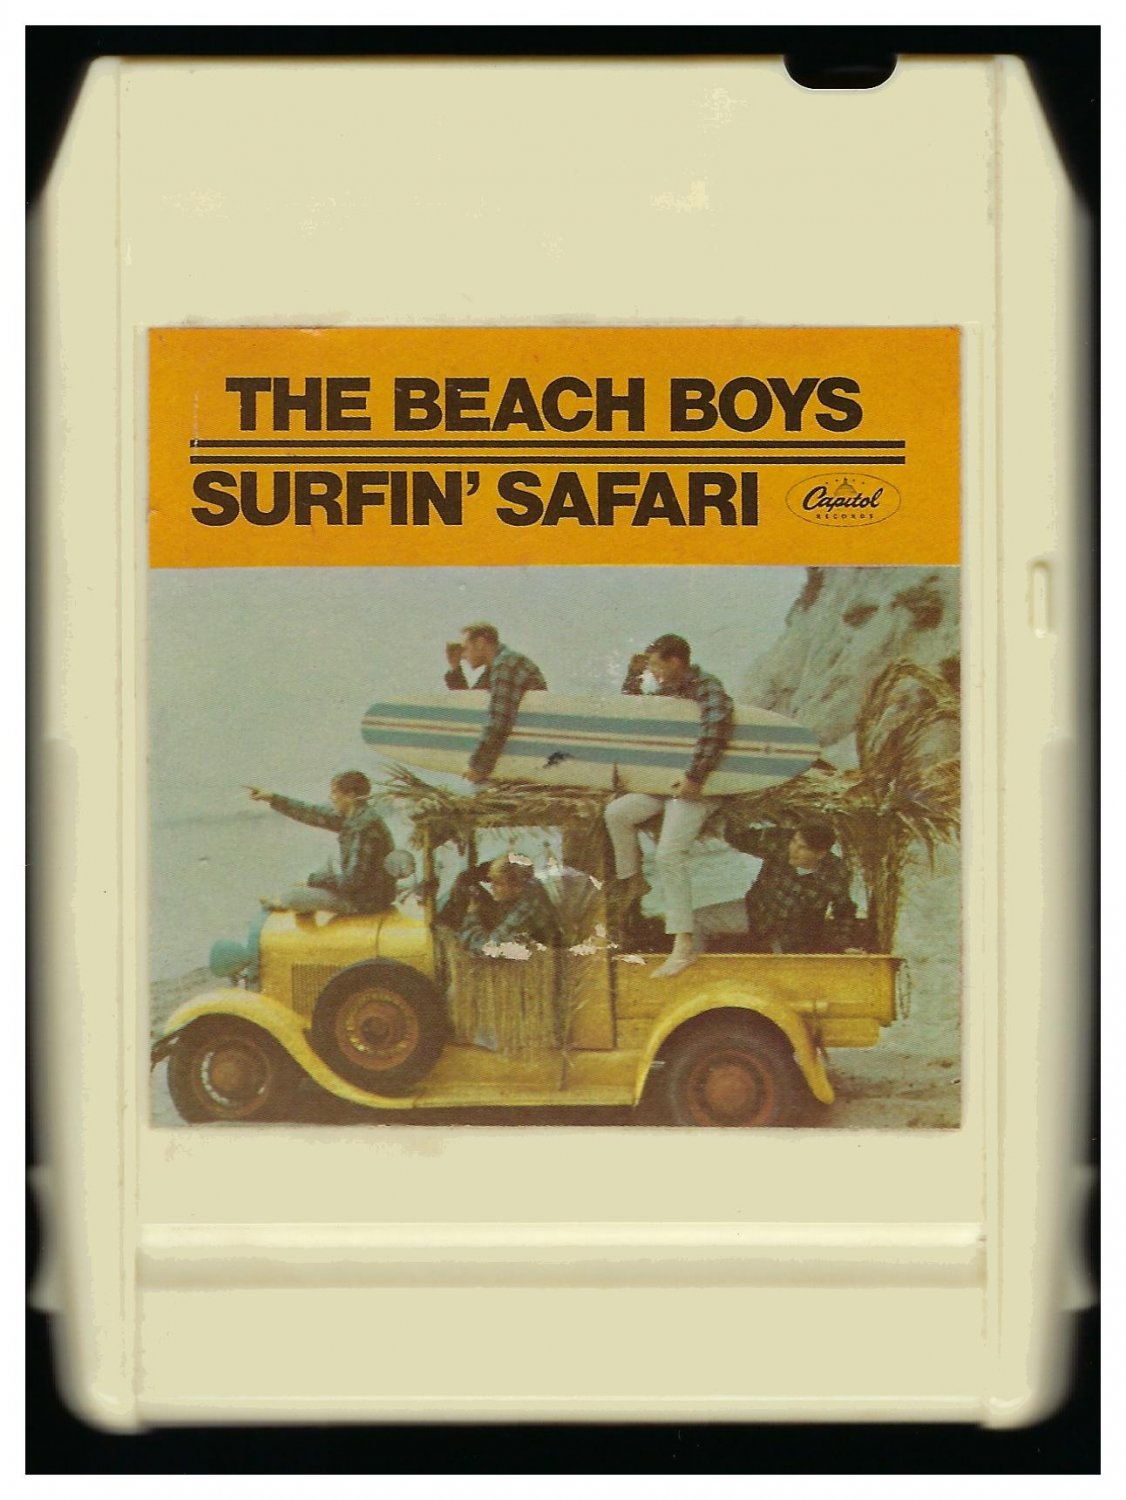 The Beach Boys - Surfin' Safari 1962 Debut CAPITOL A19C 8-TRACK TAPE